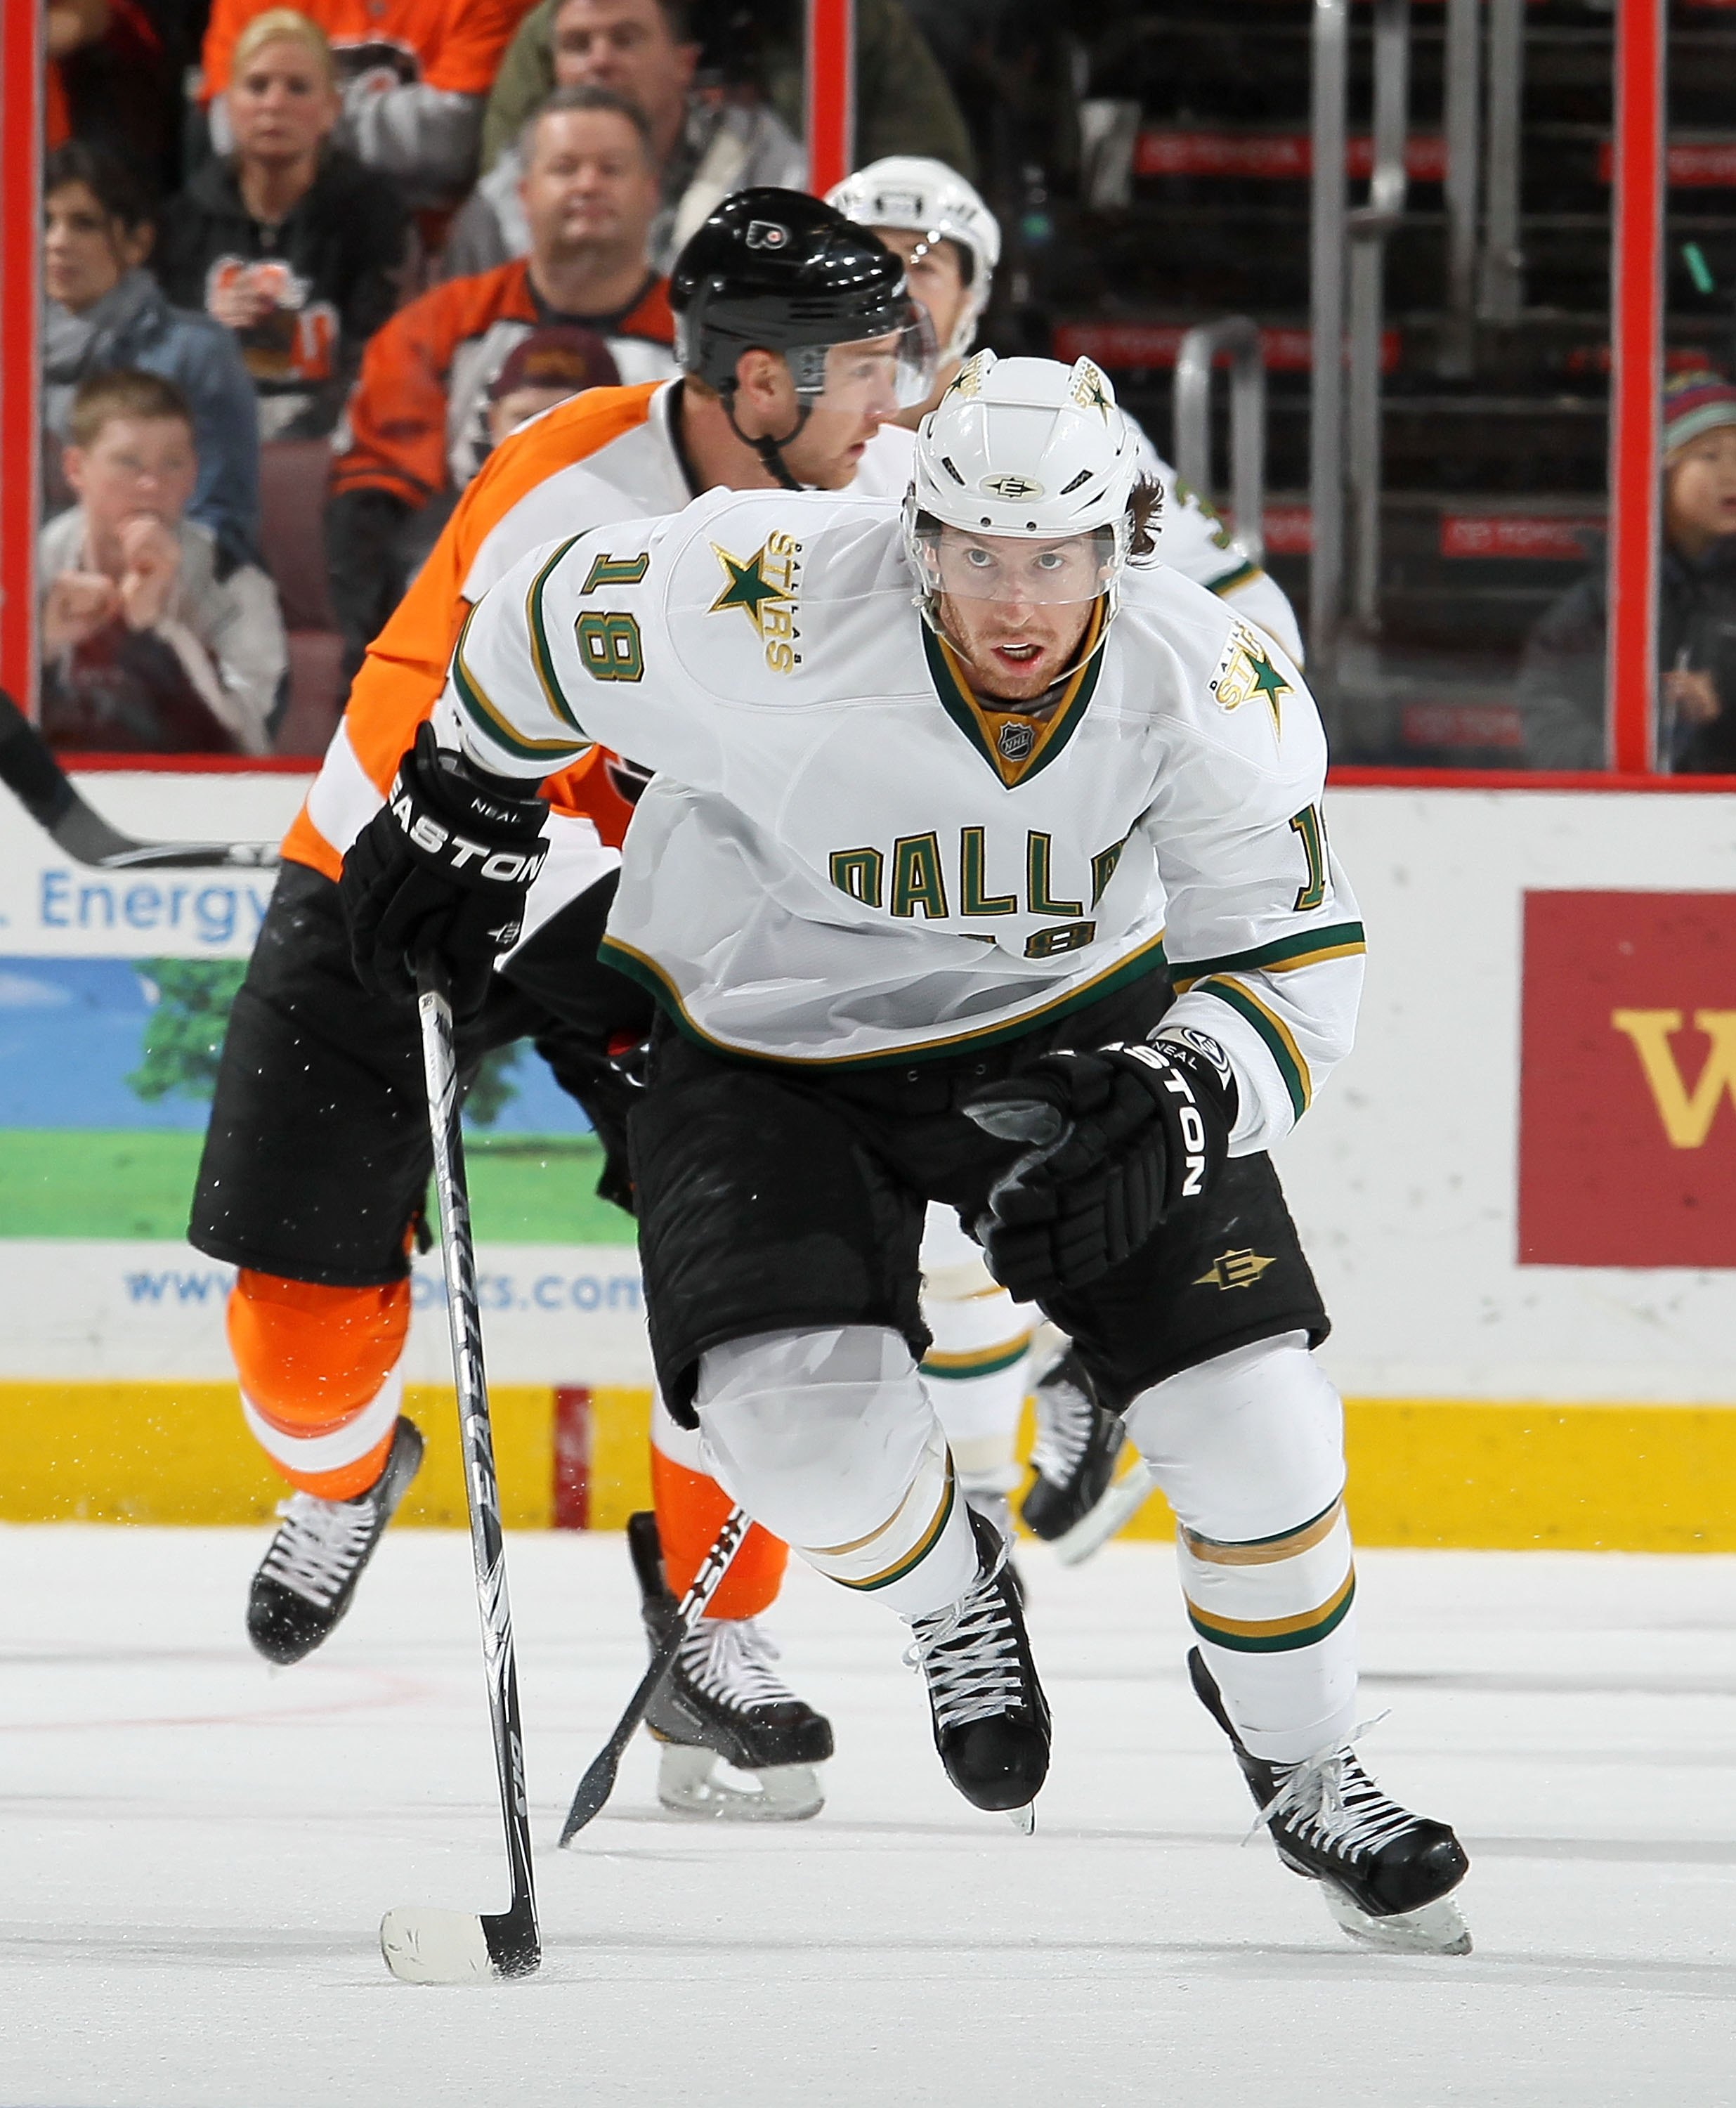 PHILADELPHIA, PA - FEBRUARY 05:  James Neal #18 of the Dallas Stars skates against the Philadelphia Flyers on February 5, 2011 at Wells Fargo Center in Philadelphia, Pennsylvania. The Flyers defeated the Stars 3-1.  (Photo by Jim McIsaac/Getty Images)